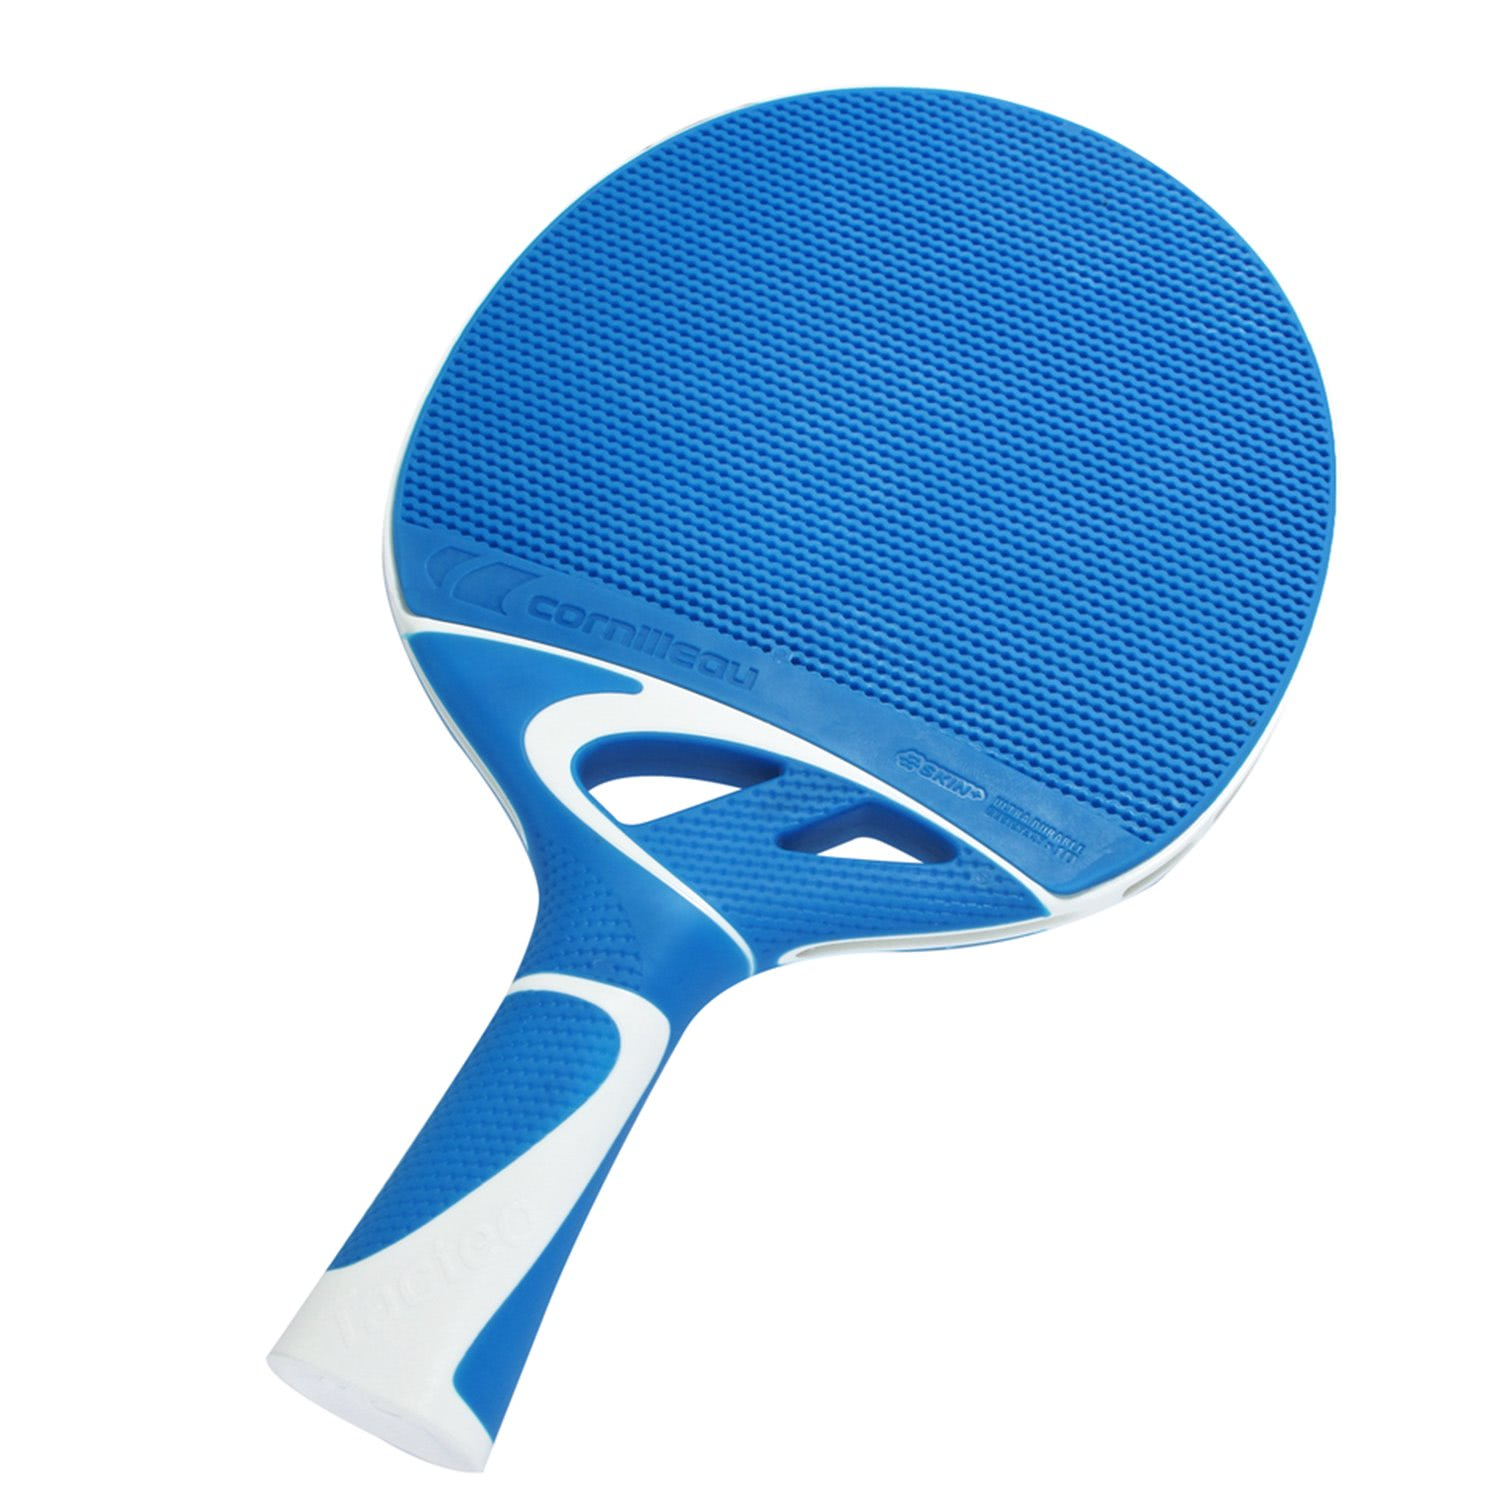 Cornilleau tacteo 30 blue schoolsport table tennis bat for Table tennis